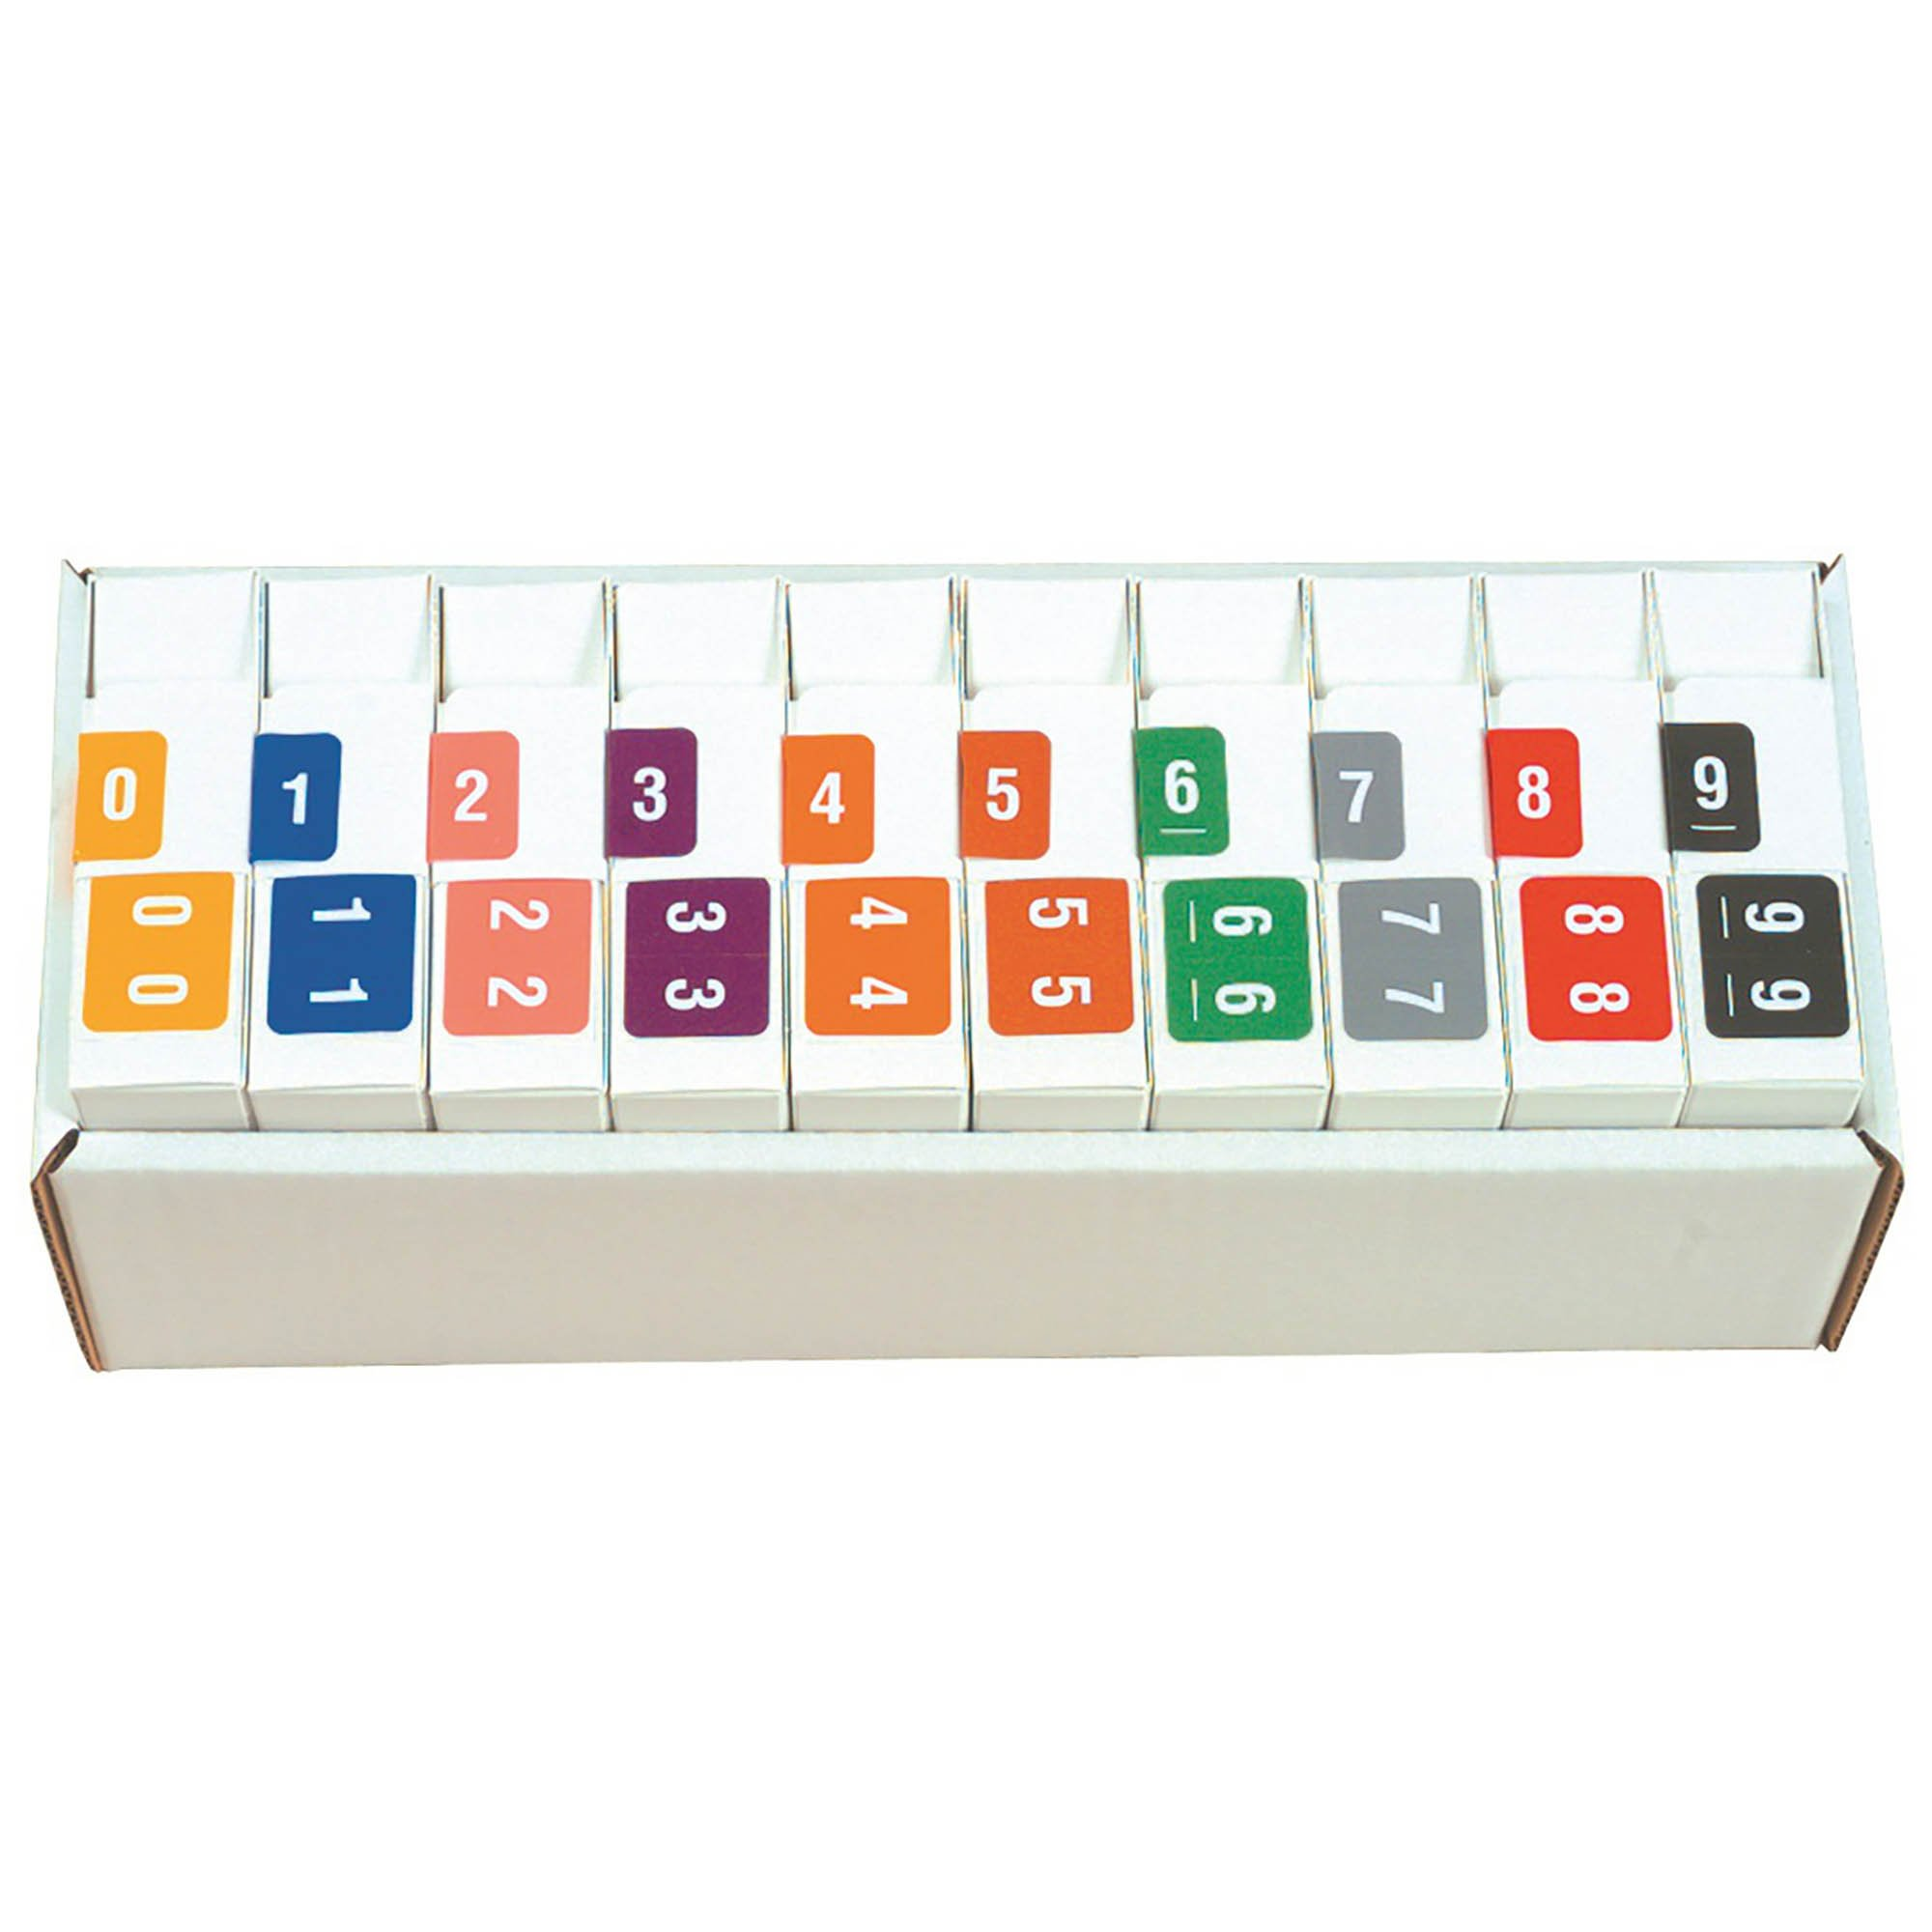 Smead DCCRN Match SENM Series Numeric Roll Labels - Set of Number 0 To 9